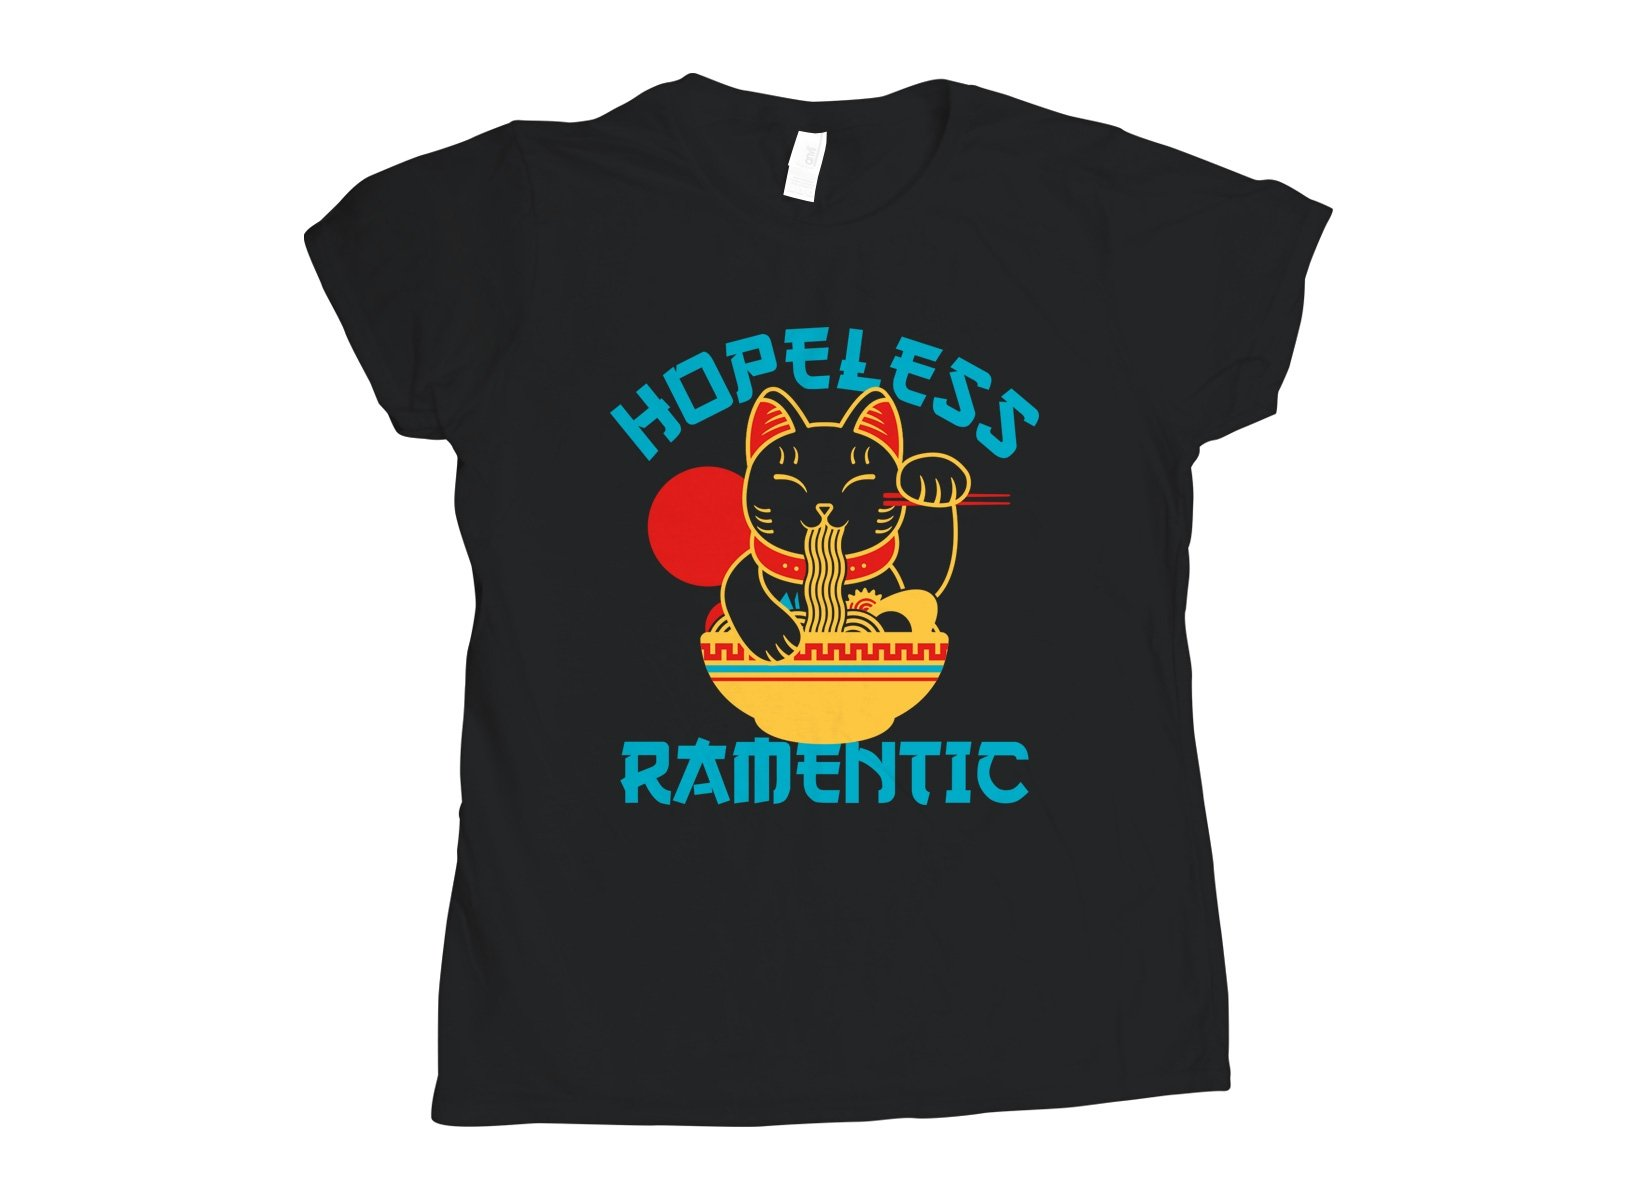 Hopeless Ramentic on Womens T-Shirt